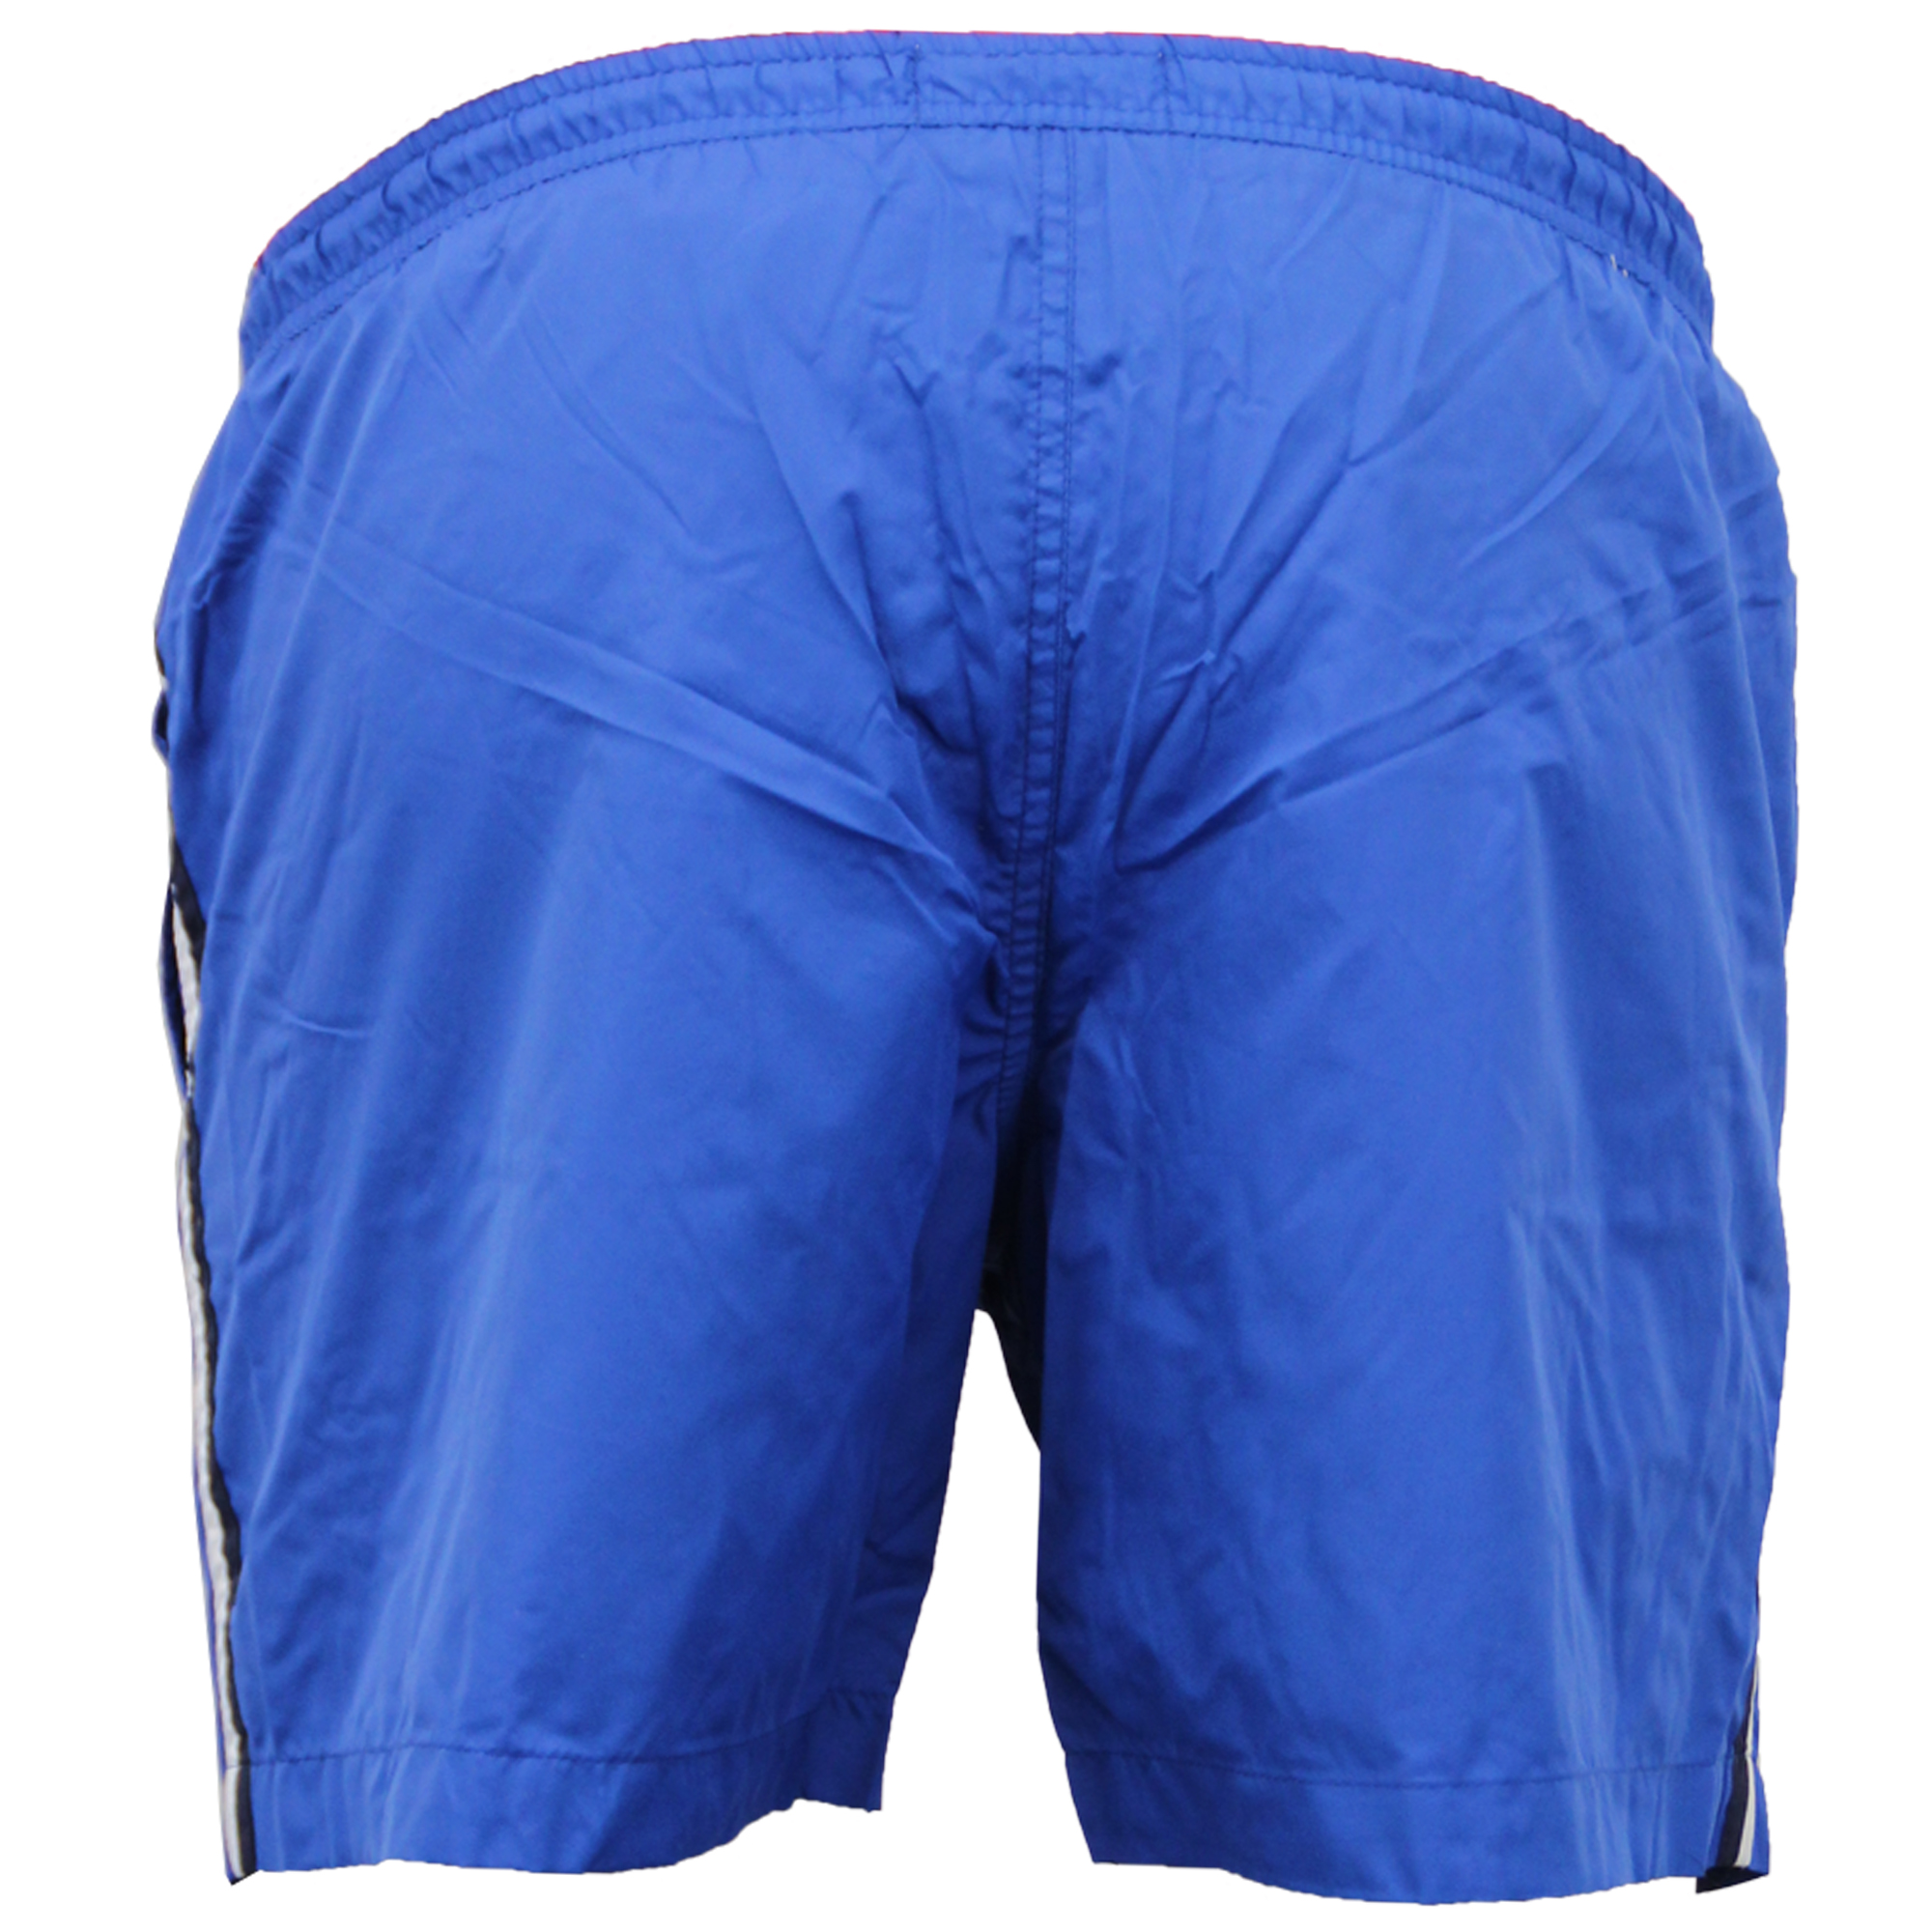 Mens-Swim-Board-Shorts-By-Brave-Soul-Mesh-Lined-New thumbnail 9